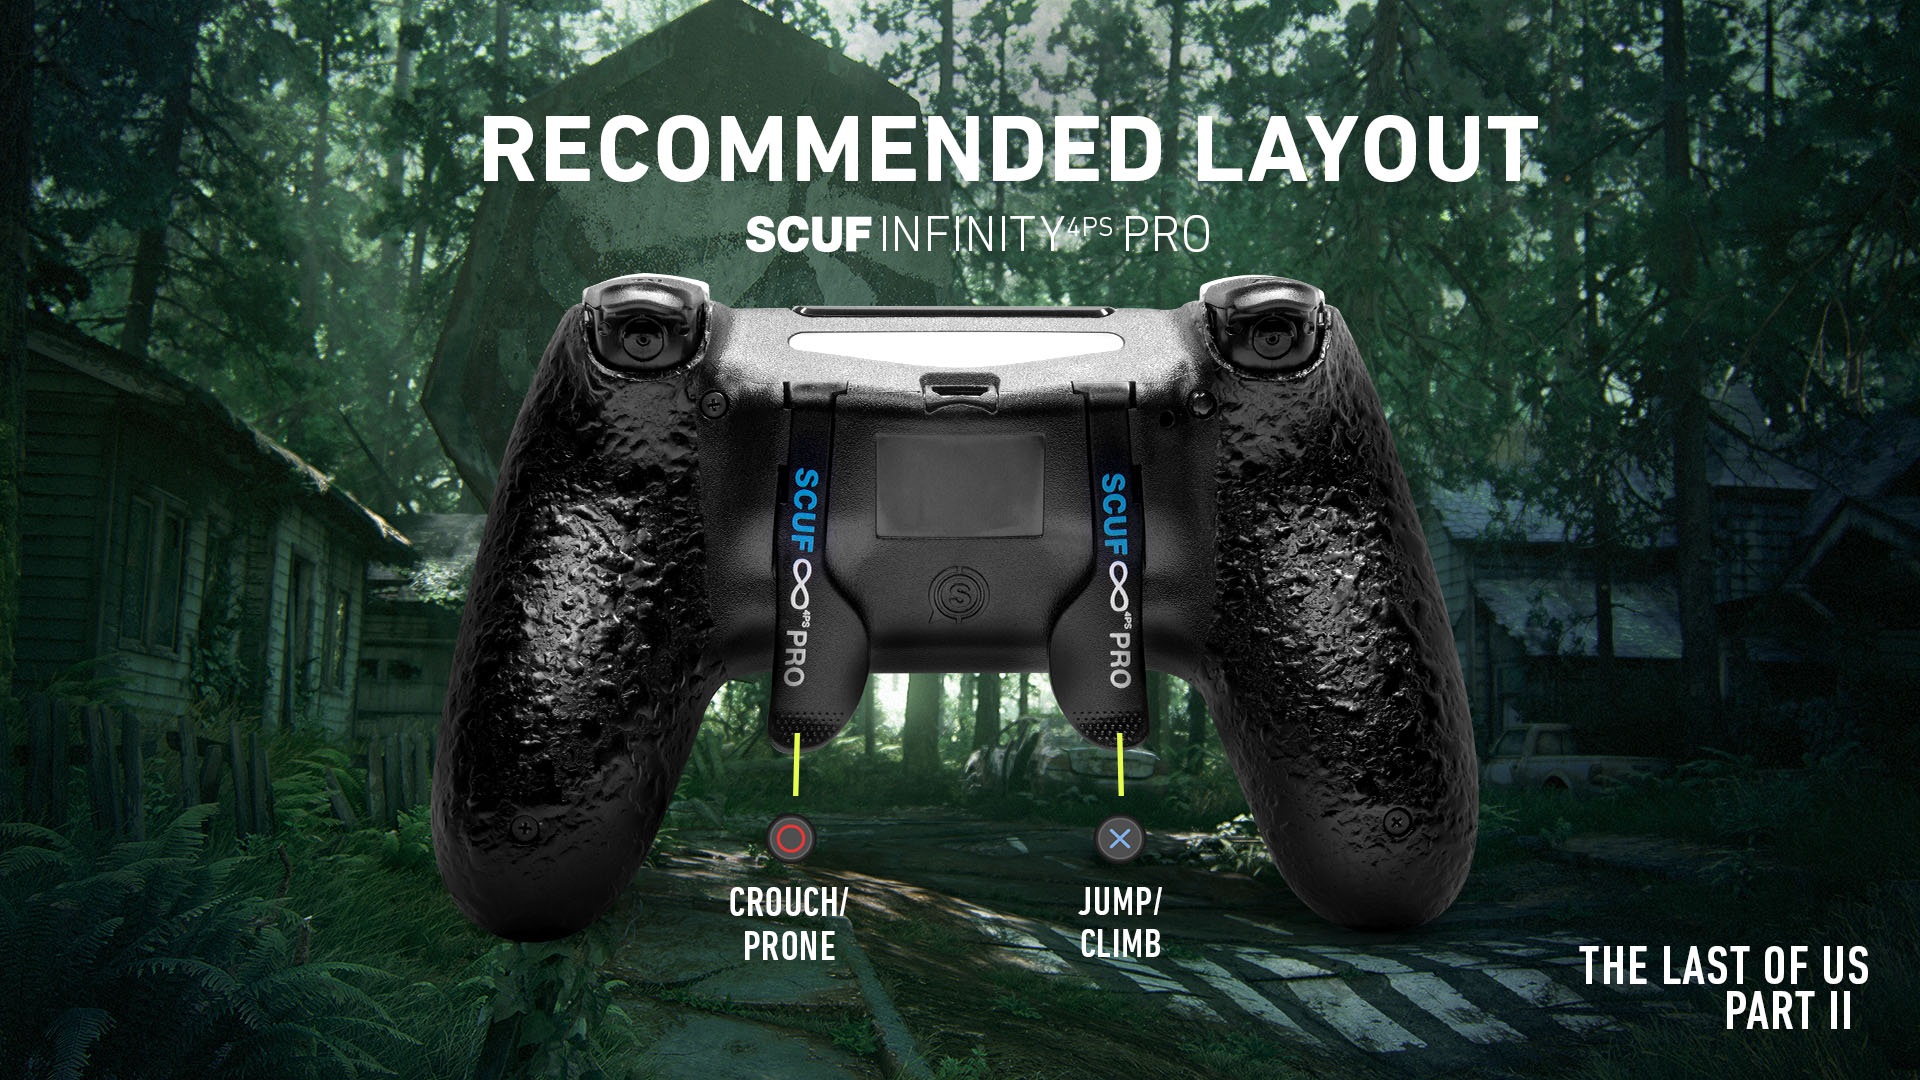 SCUF Infinty4PSPRO The Last of Us Part II ps4 Controller setup